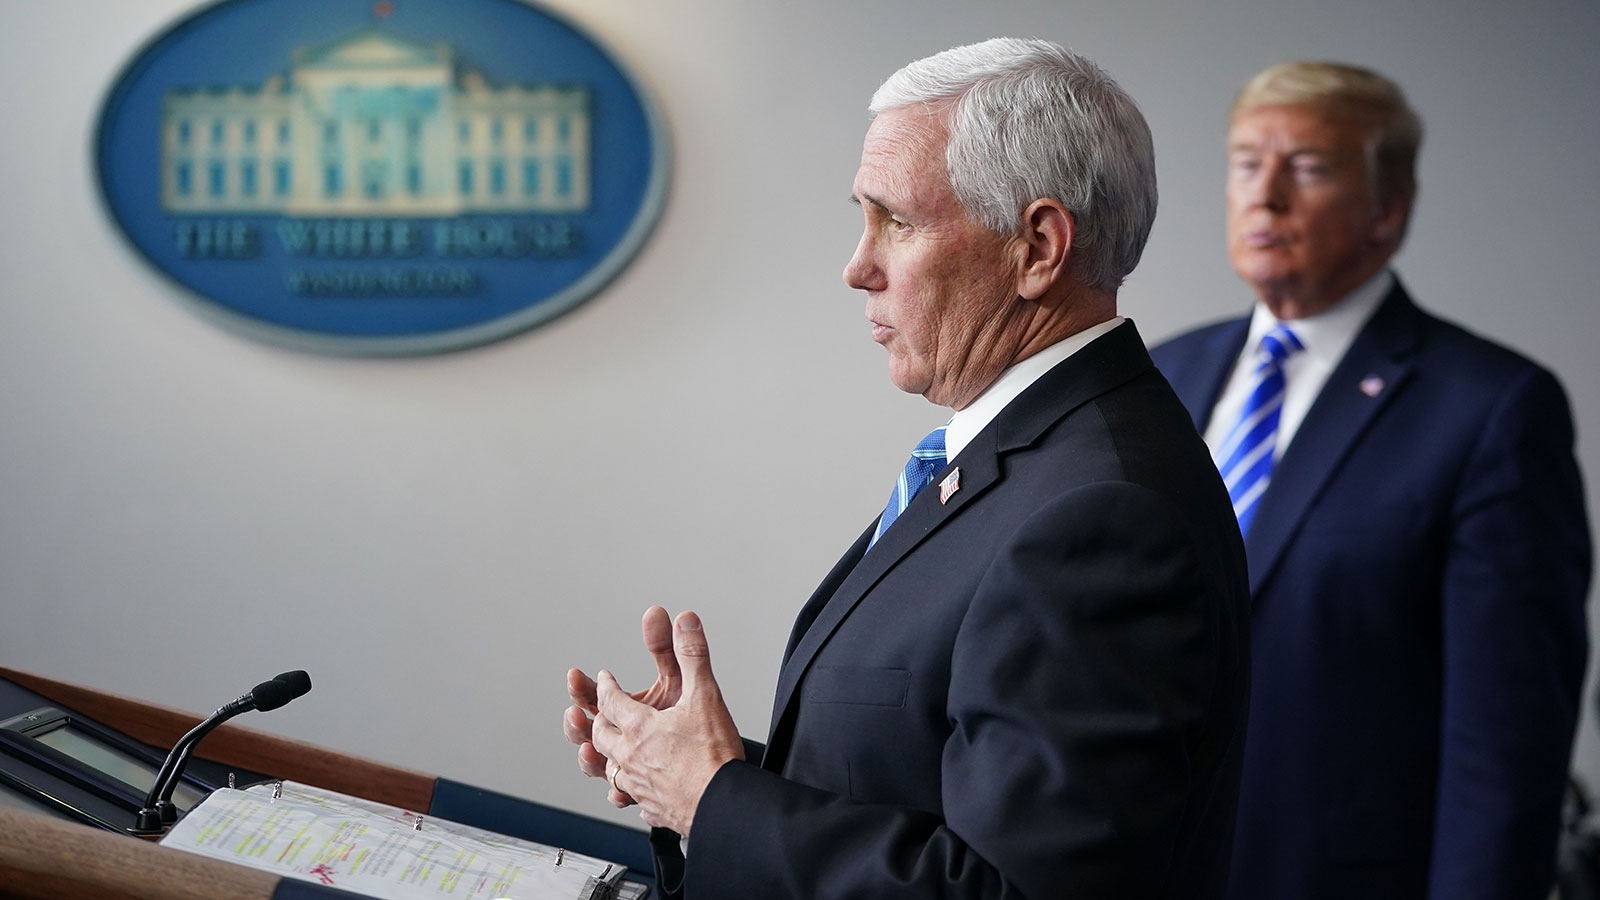 US Vice President Mike Pence speaks during the daily briefing on the novel coronavirus, which causes COVID-19, in the Brady Briefing Room of the White House on April 23.